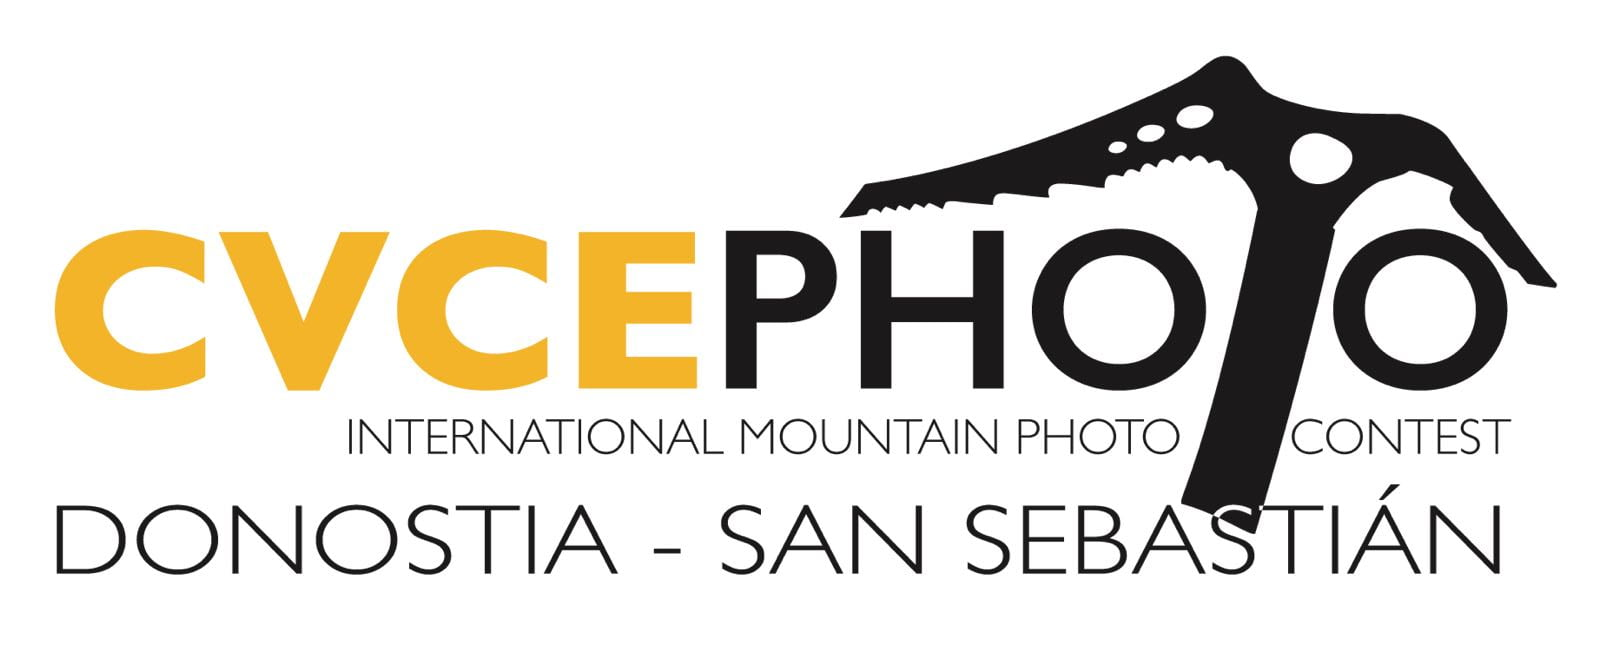 CVCEPHOTO 5th International Mountain Activity Photo Contest